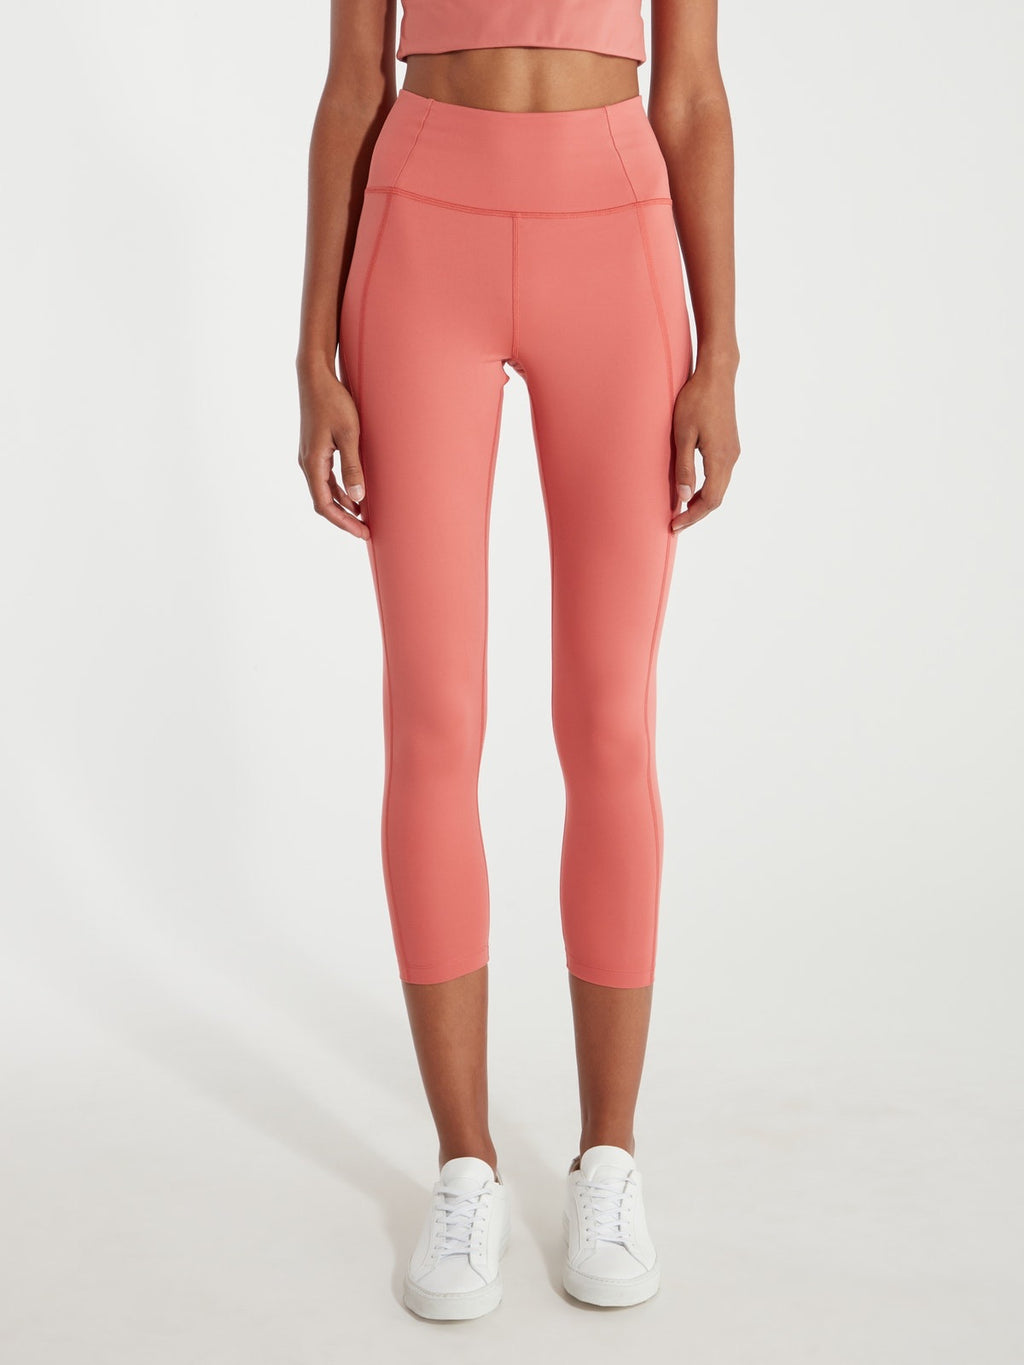 Compressive High-Rise 23 3/4 Legging - Peach